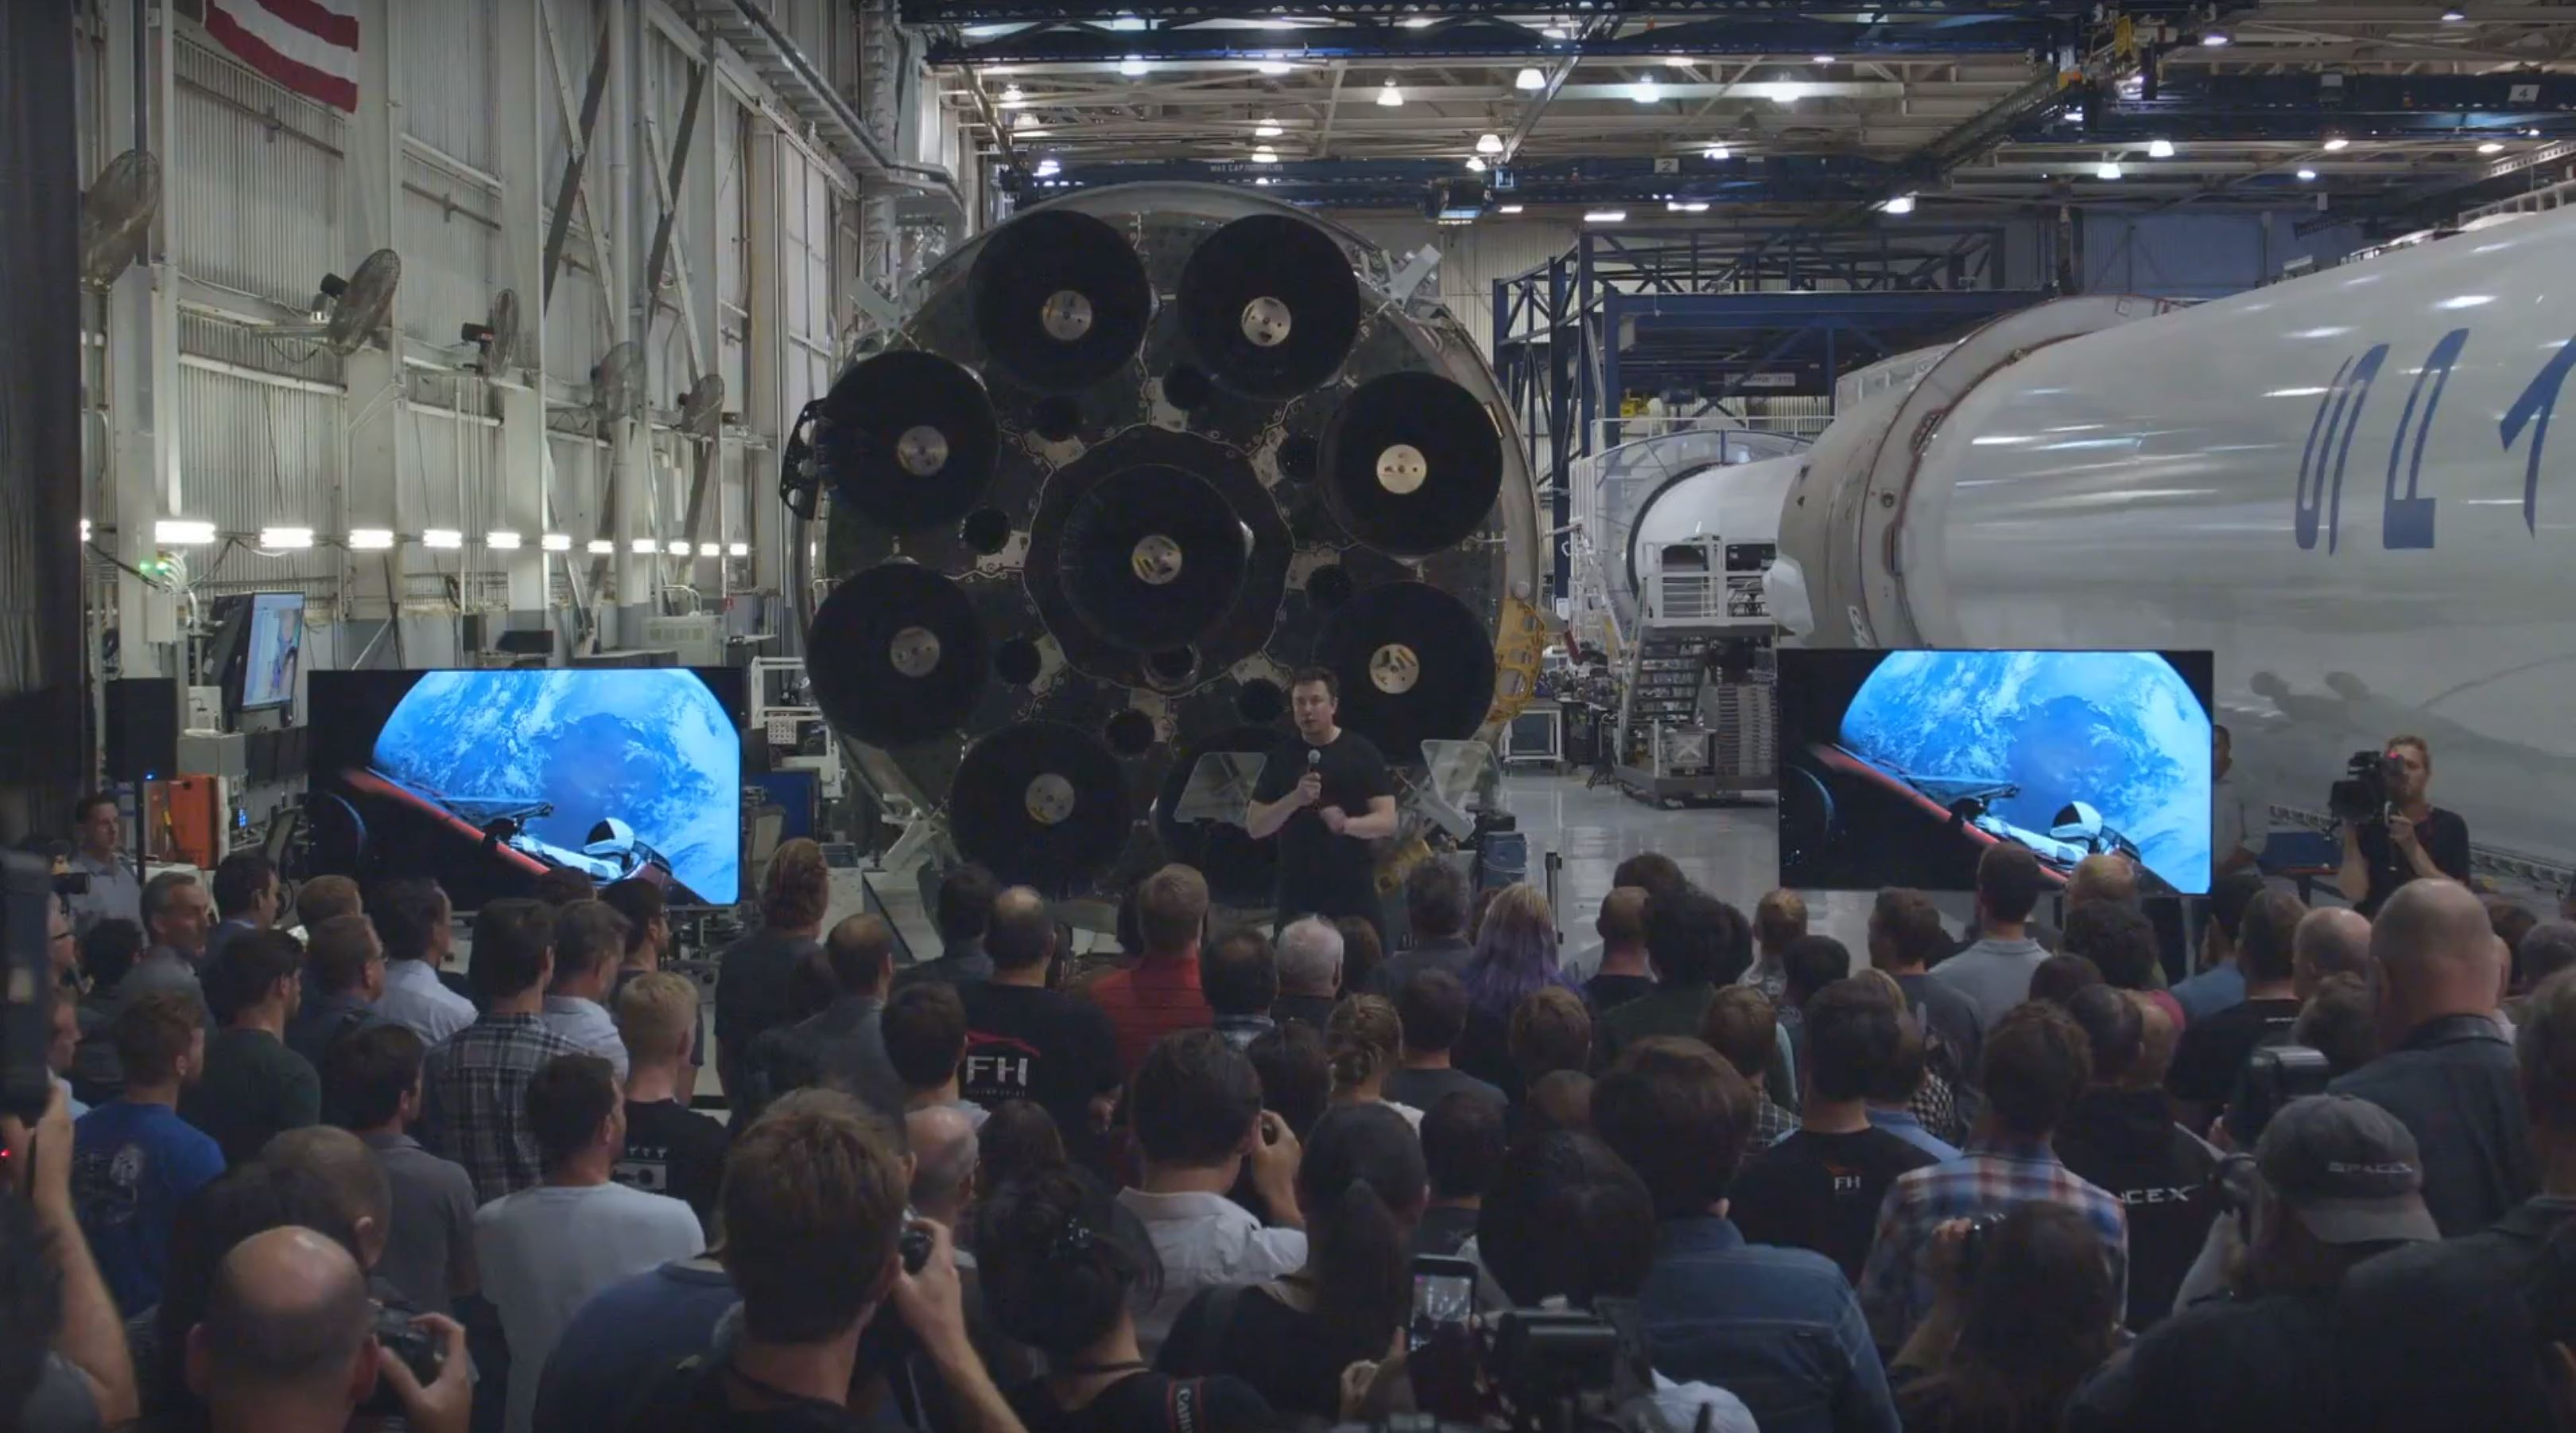 BFR 2018 event Elon Musk (SpaceX) 3